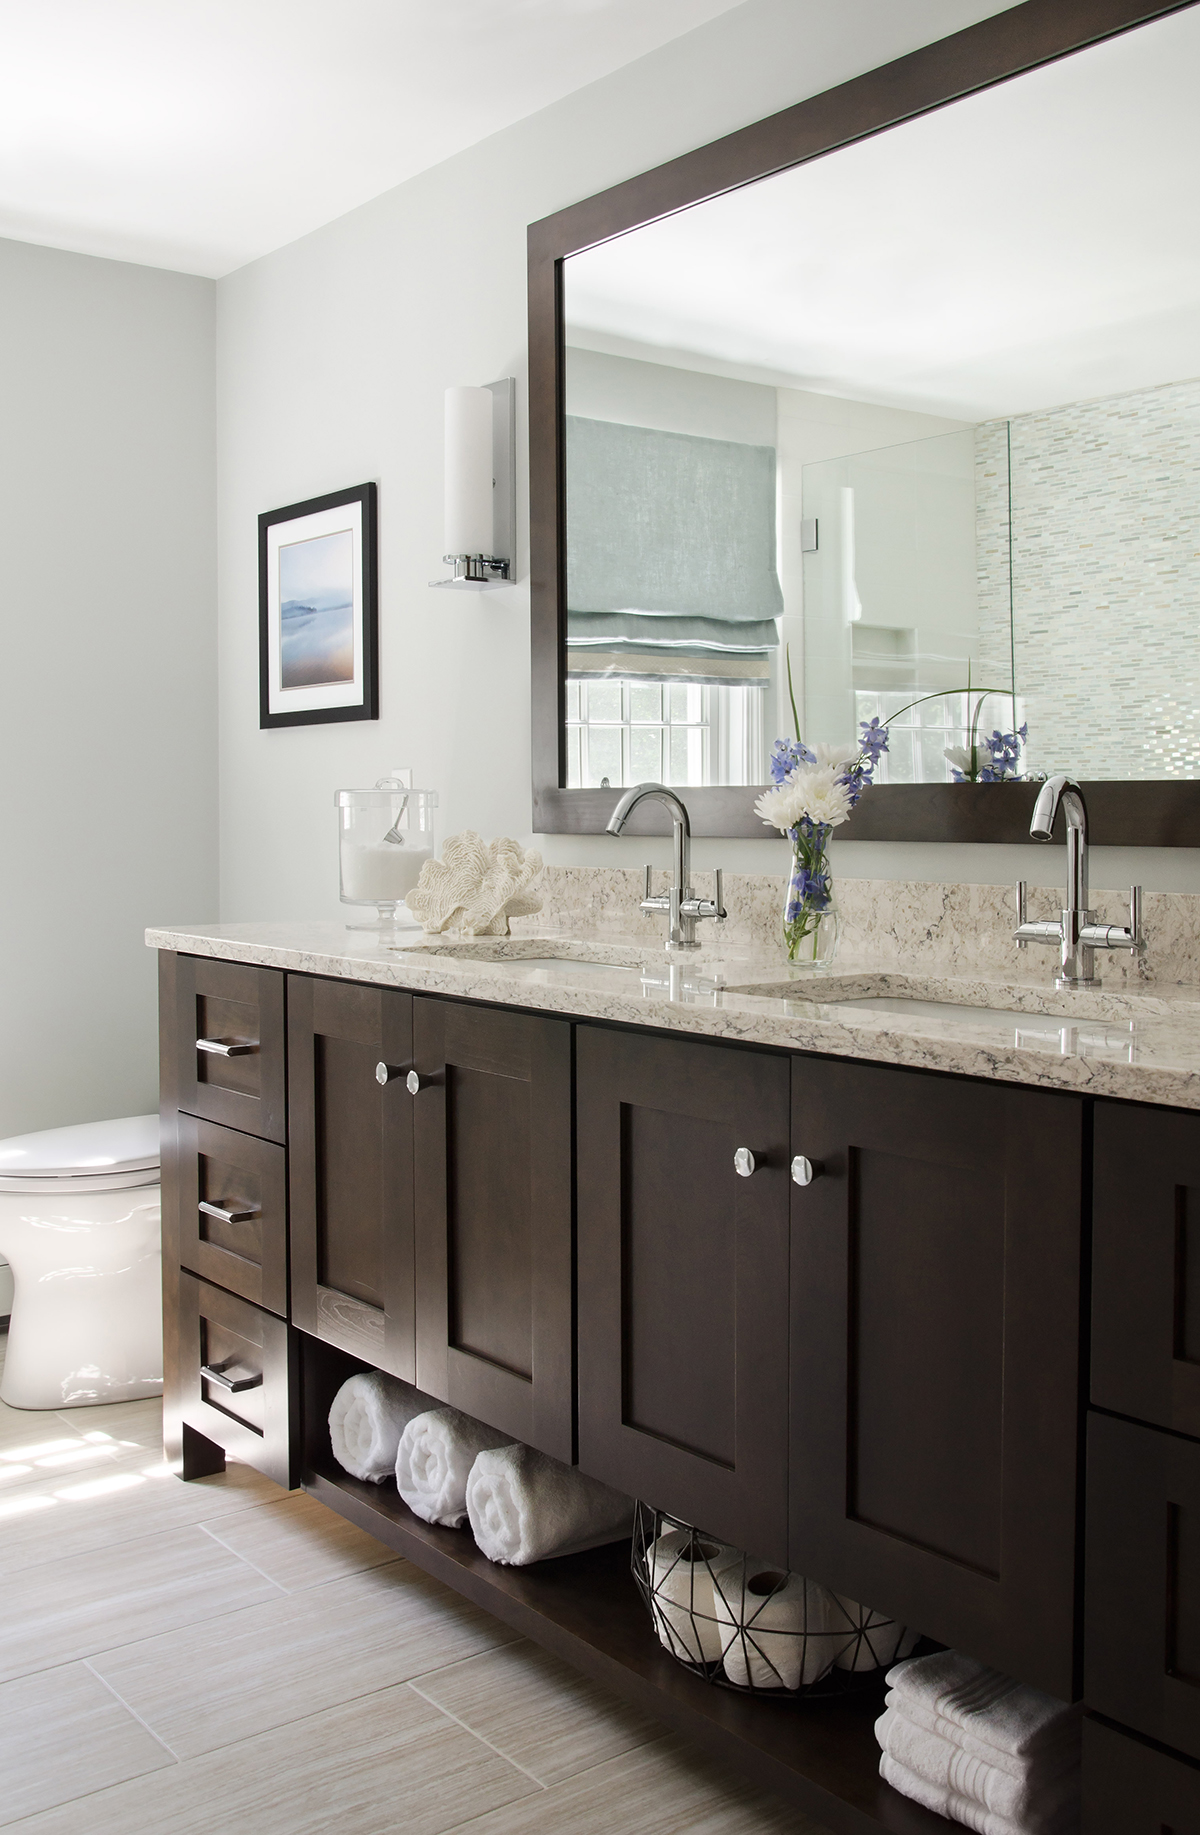 Norwell, MA bathroom interior by Susan Curtis Interiors